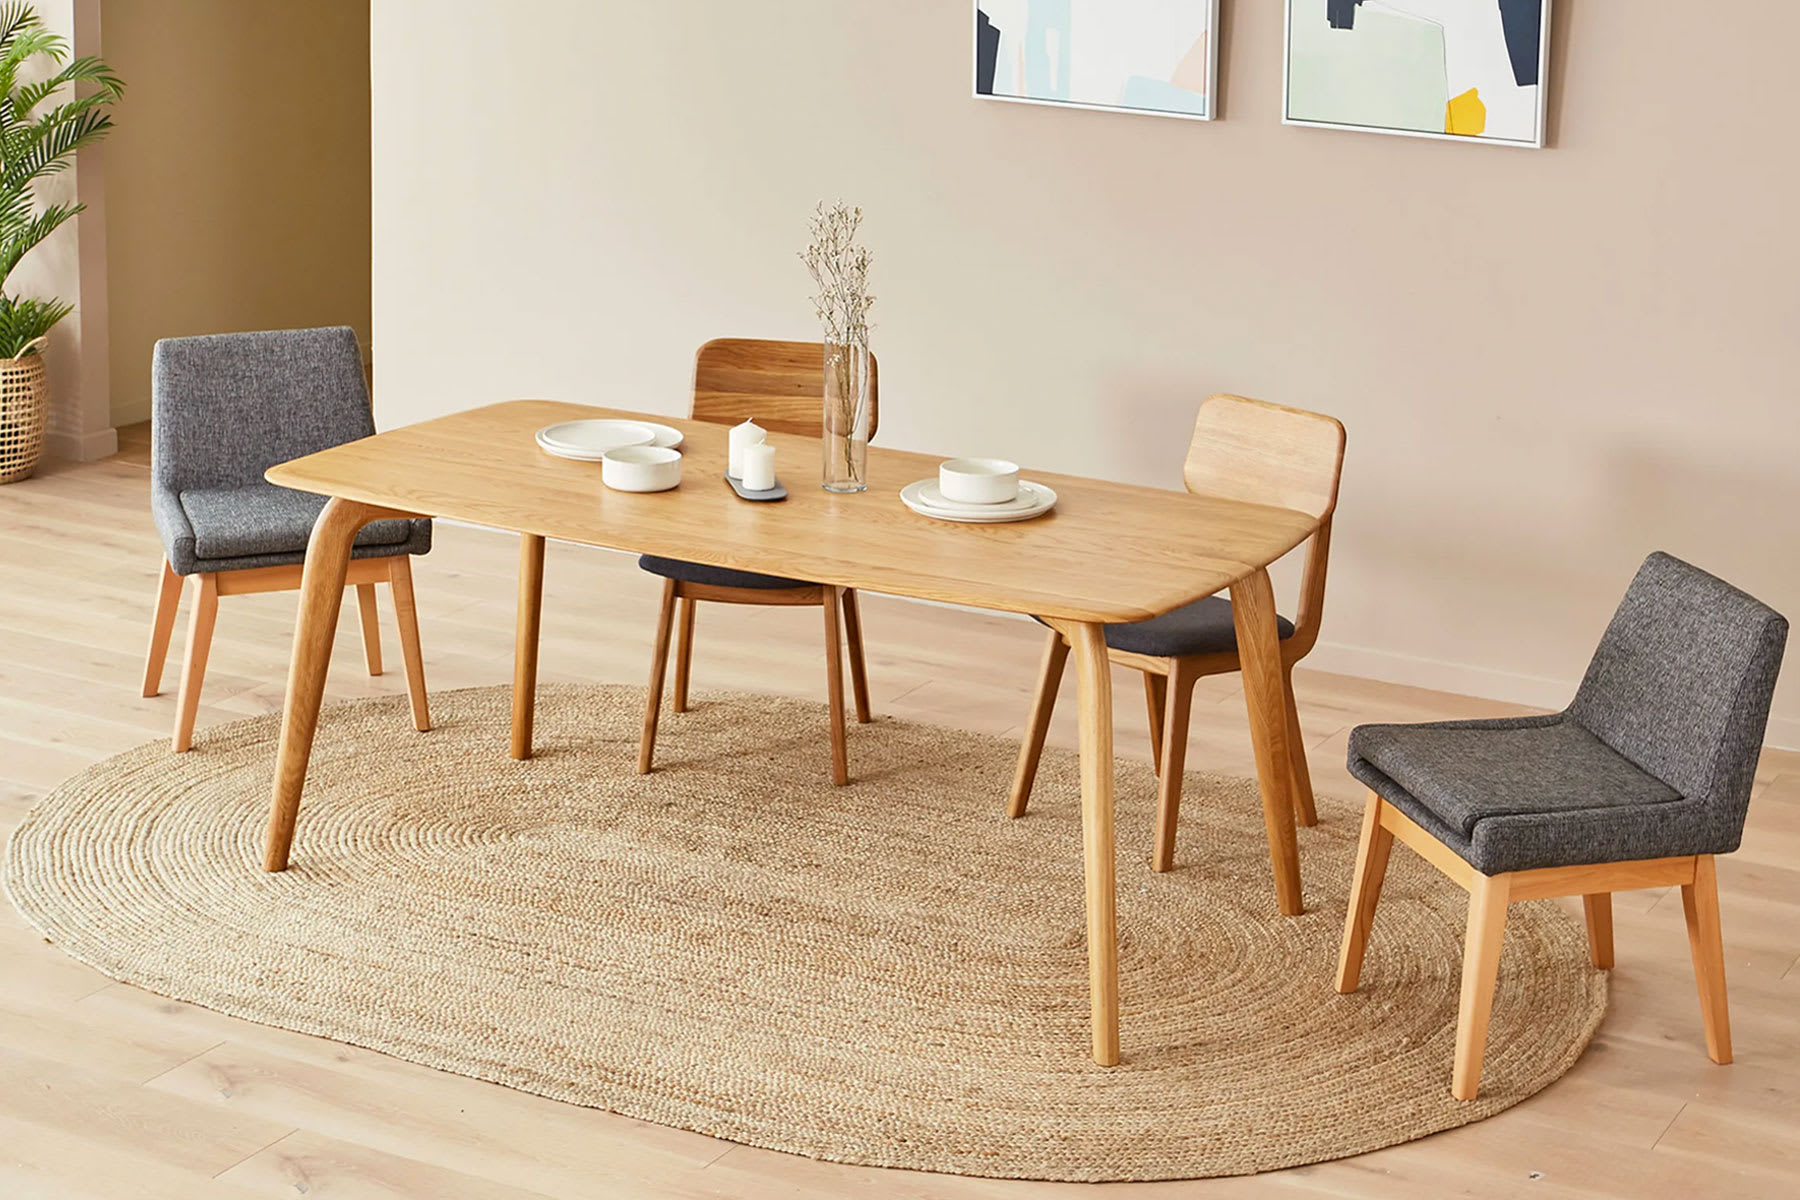 Bright Scandi dining space with wood dining table and chairs